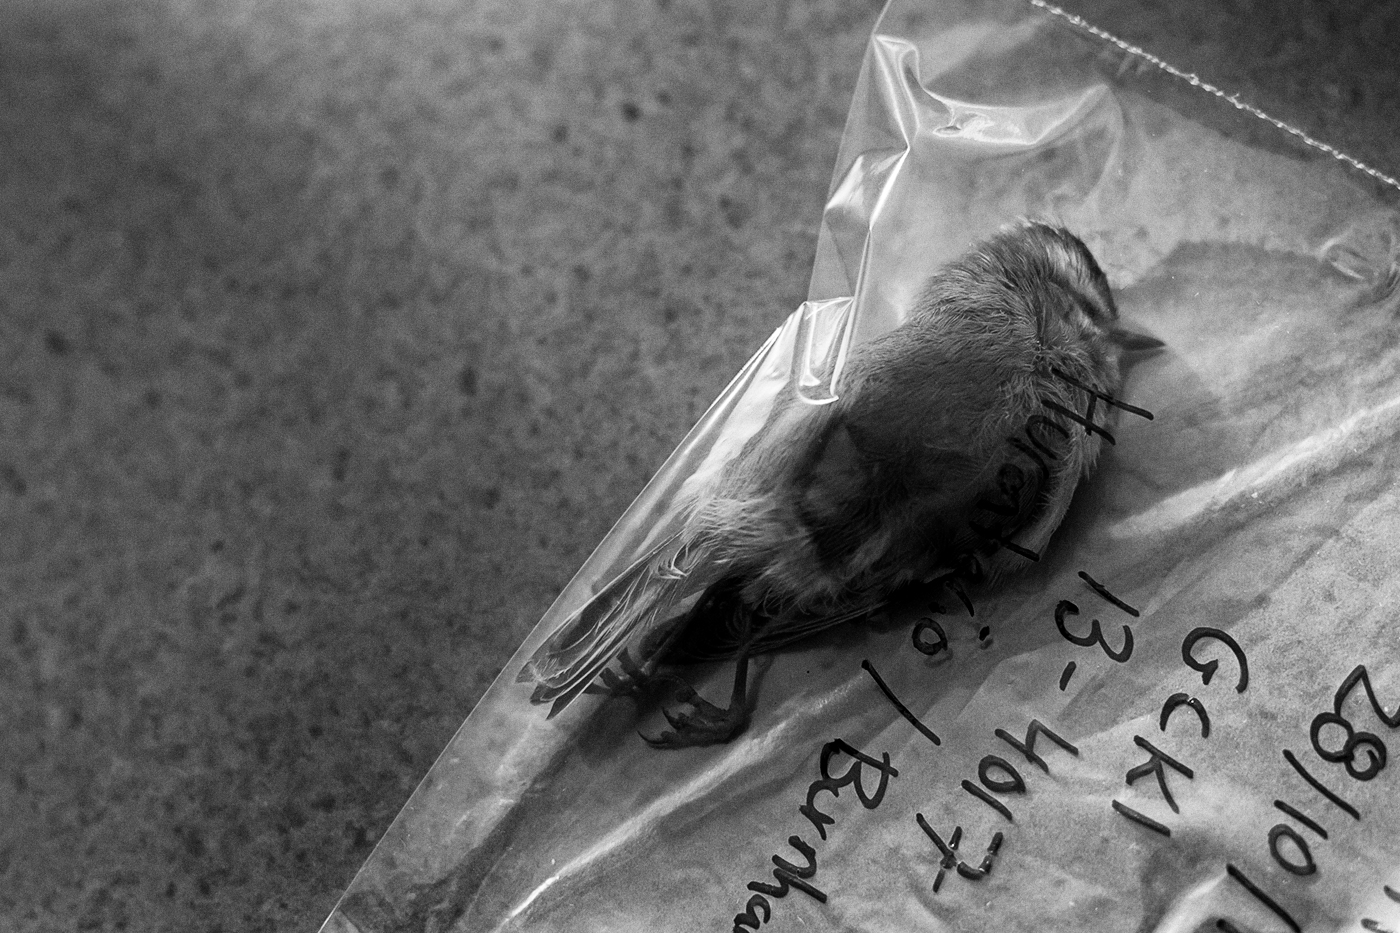 A dead bird in a plastic bag on a table top